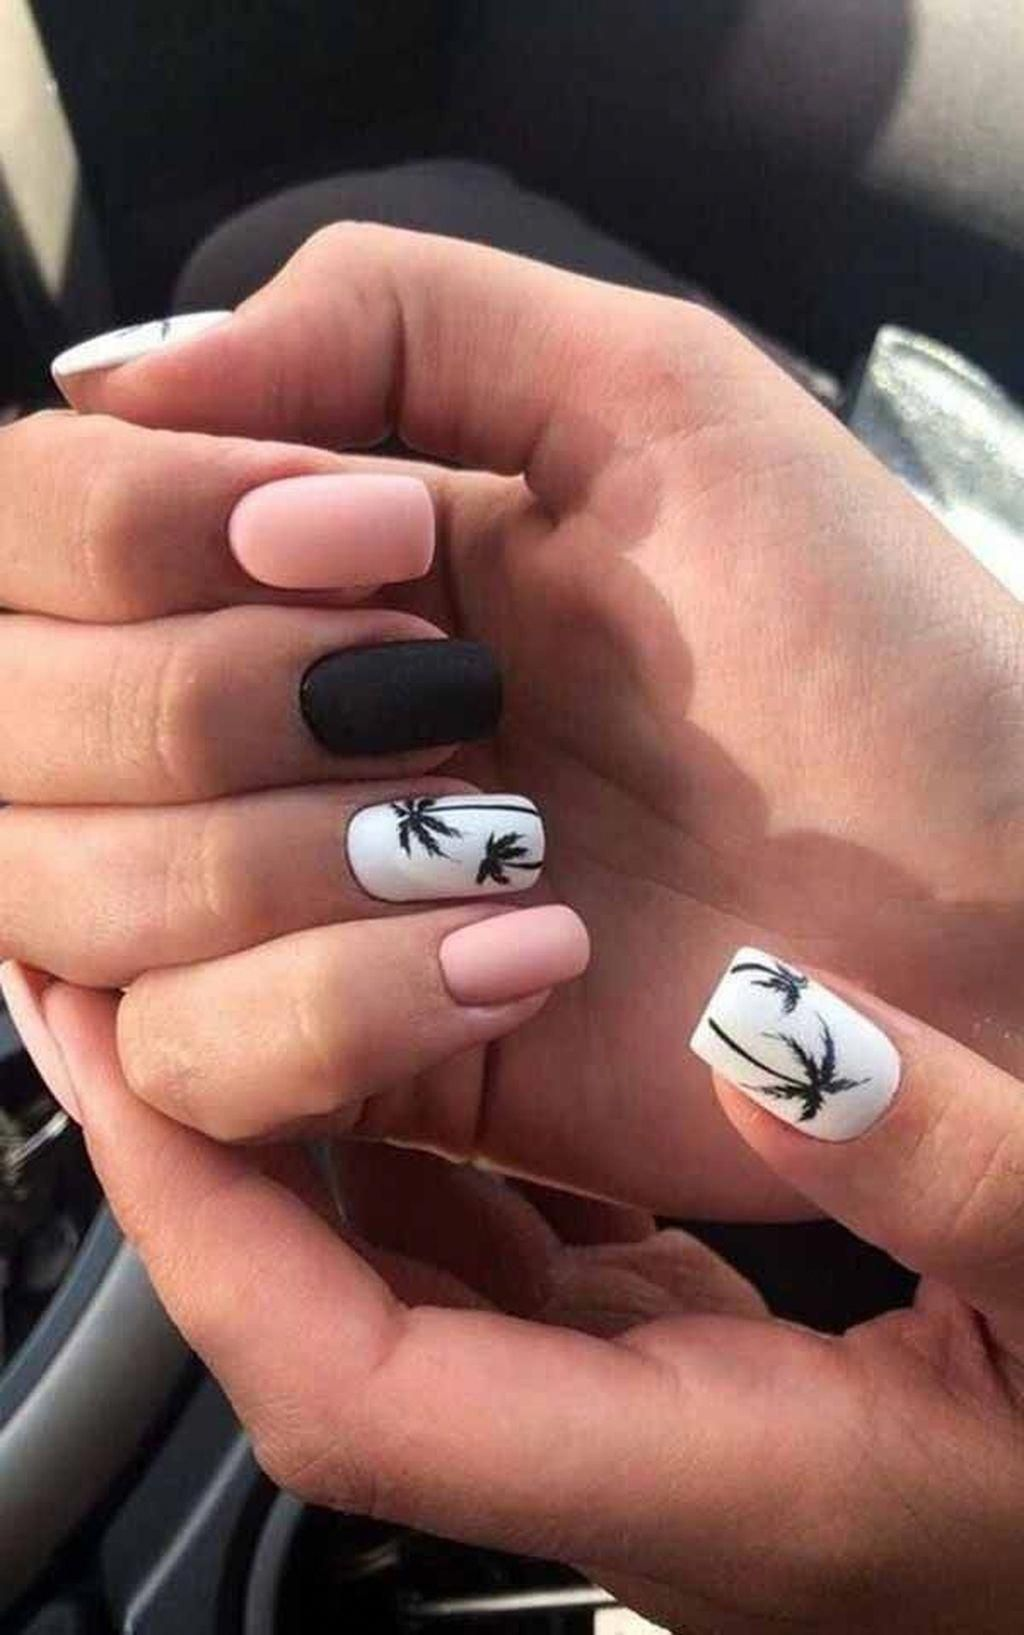 Stunning 58 Perfect Summer Beach Nails Designs Ideas For Your Exceptional Look Summergelnailsideas In 2020 Beach Nail Art Summer Nails Beach Nail Art Summer